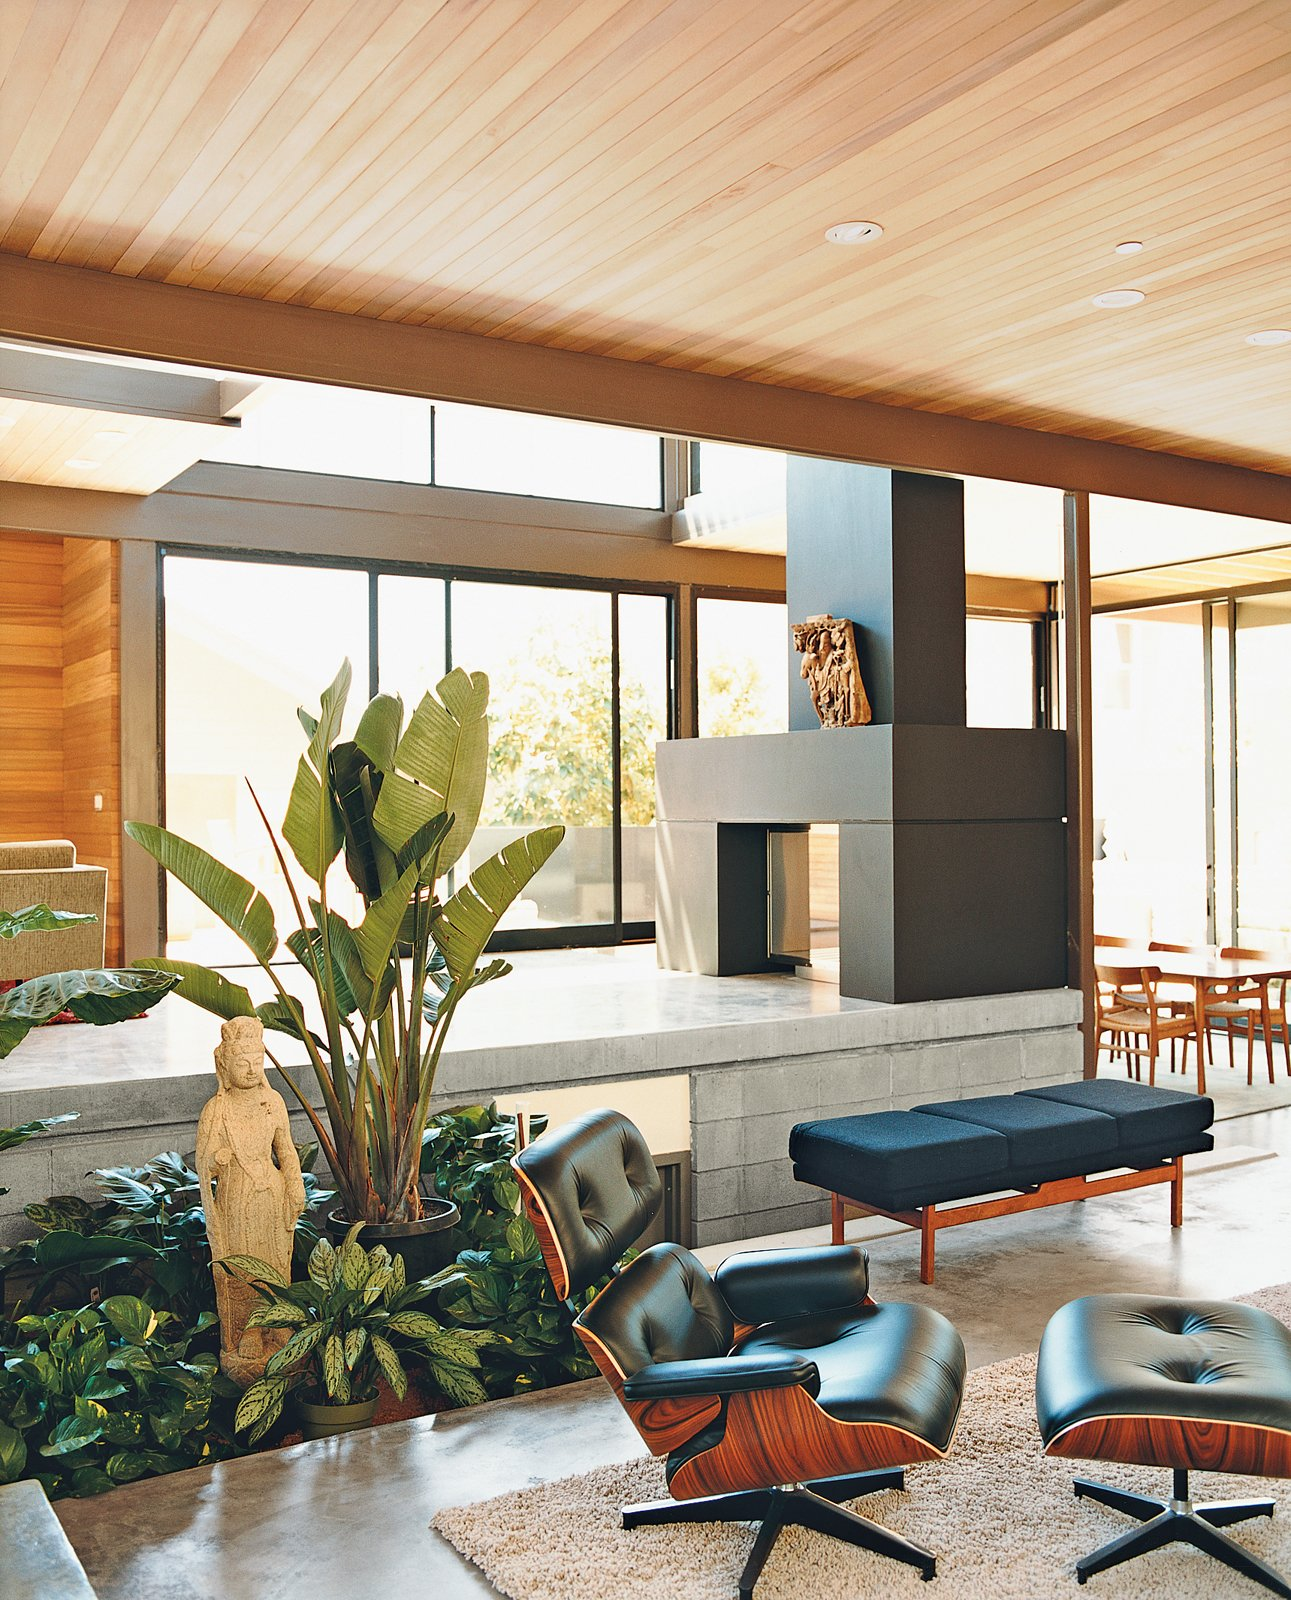 Living, Recliner, Concrete, and Two-Sided The lower living space on the ground floor of a Los Angeles, California, home features an EcoSmart fireplace fueled by denatured alcohol. Read the full article here.  Best Living Concrete Recliner Photos from LEEDing the Way